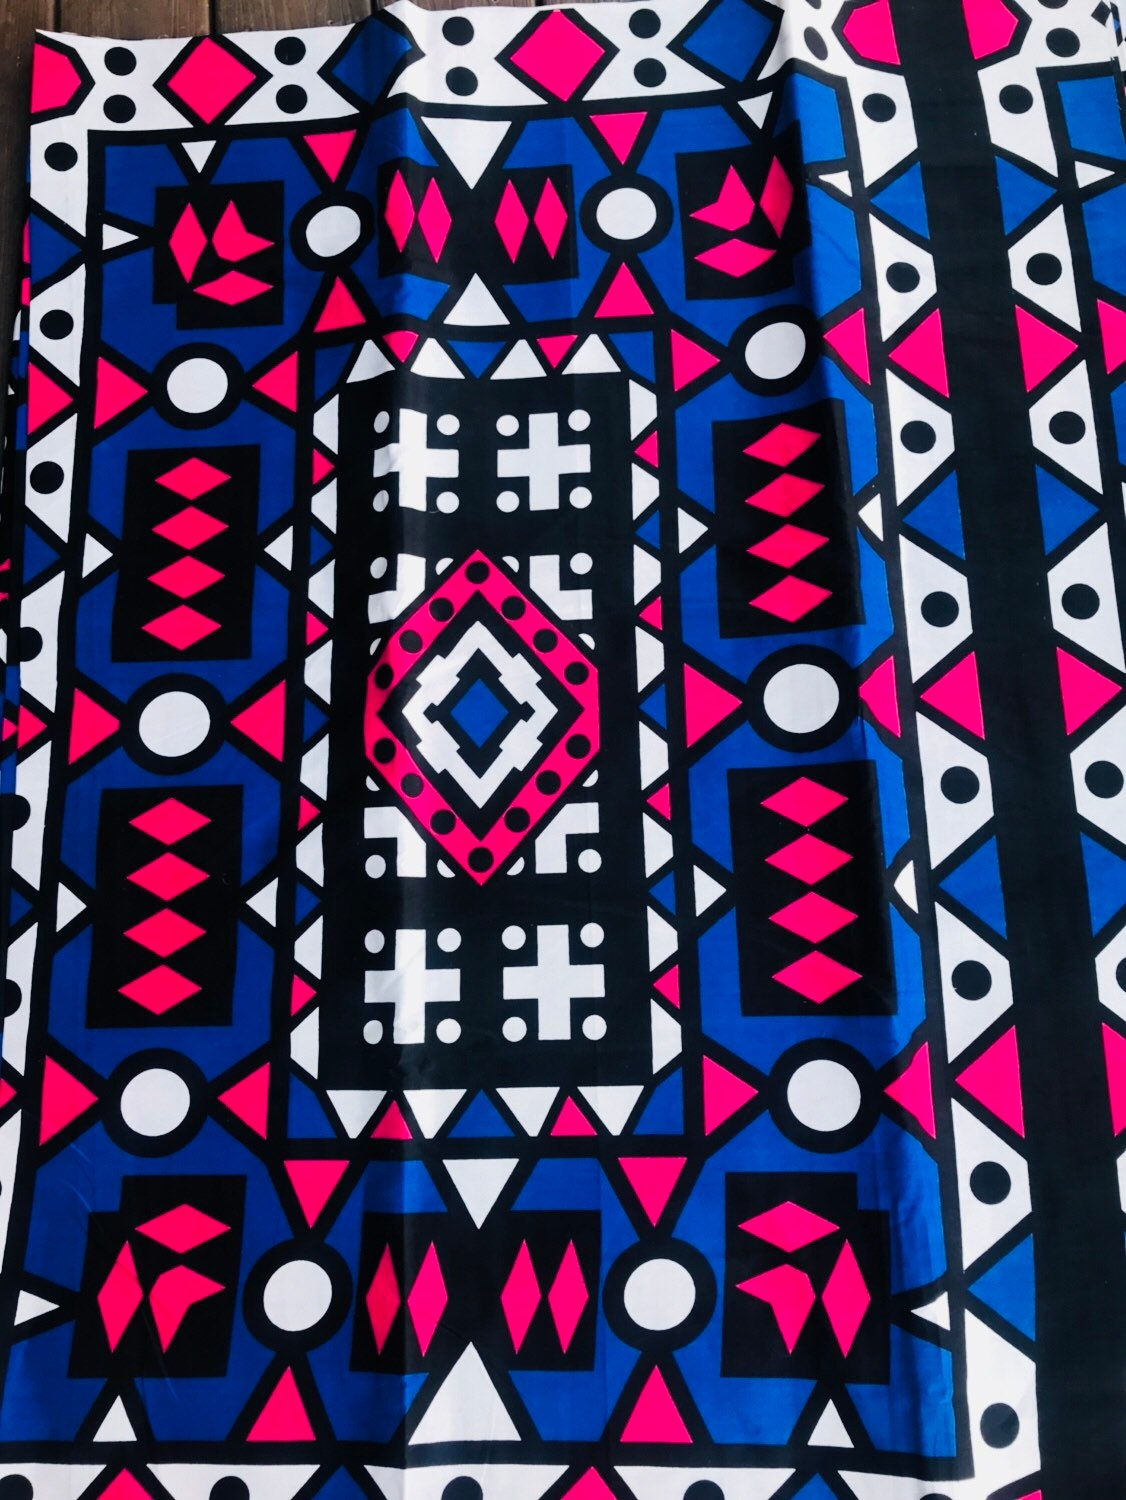 African Fabric Samakaka Angola Wax/ African Fabric/Crafts/African  Clothing/Samakaka Sold per yard